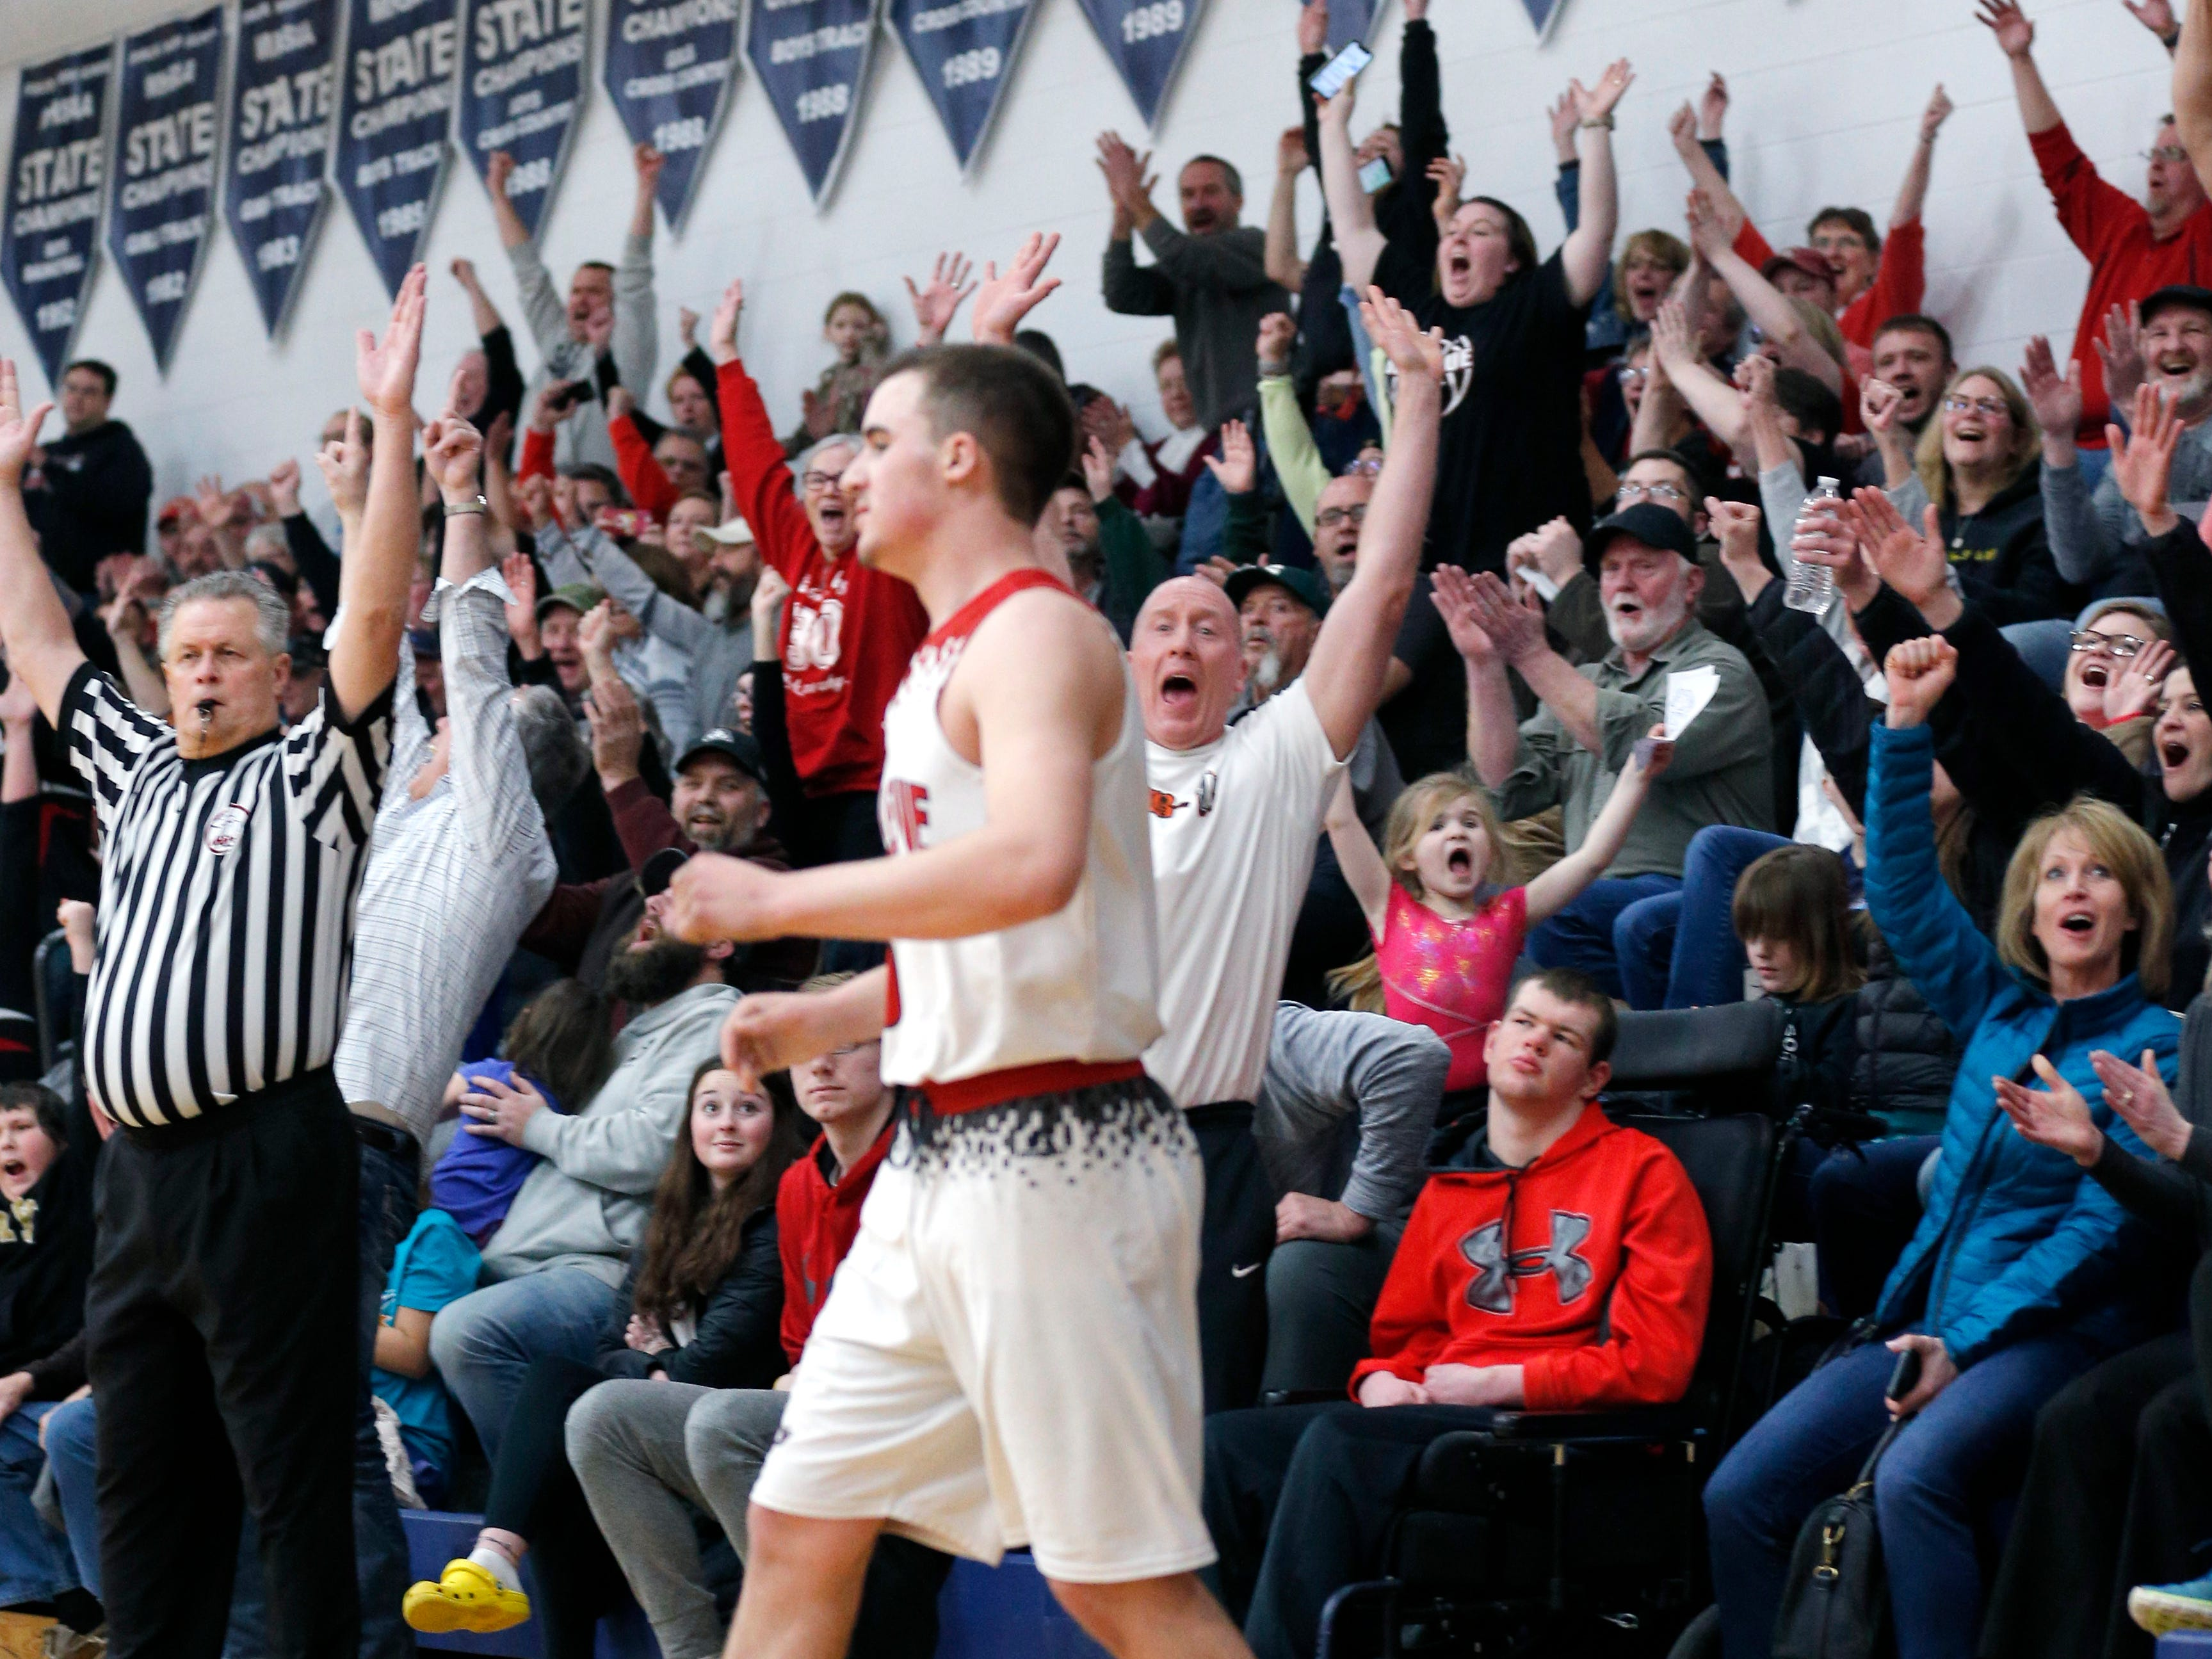 Bellevue fans react after Gino Costello, center, sunk a 3-pointer late in the game against Pittsford in their regional final, Thursday, March 7, 2019, in Fowler, Mich. Bellevue won 42-28.